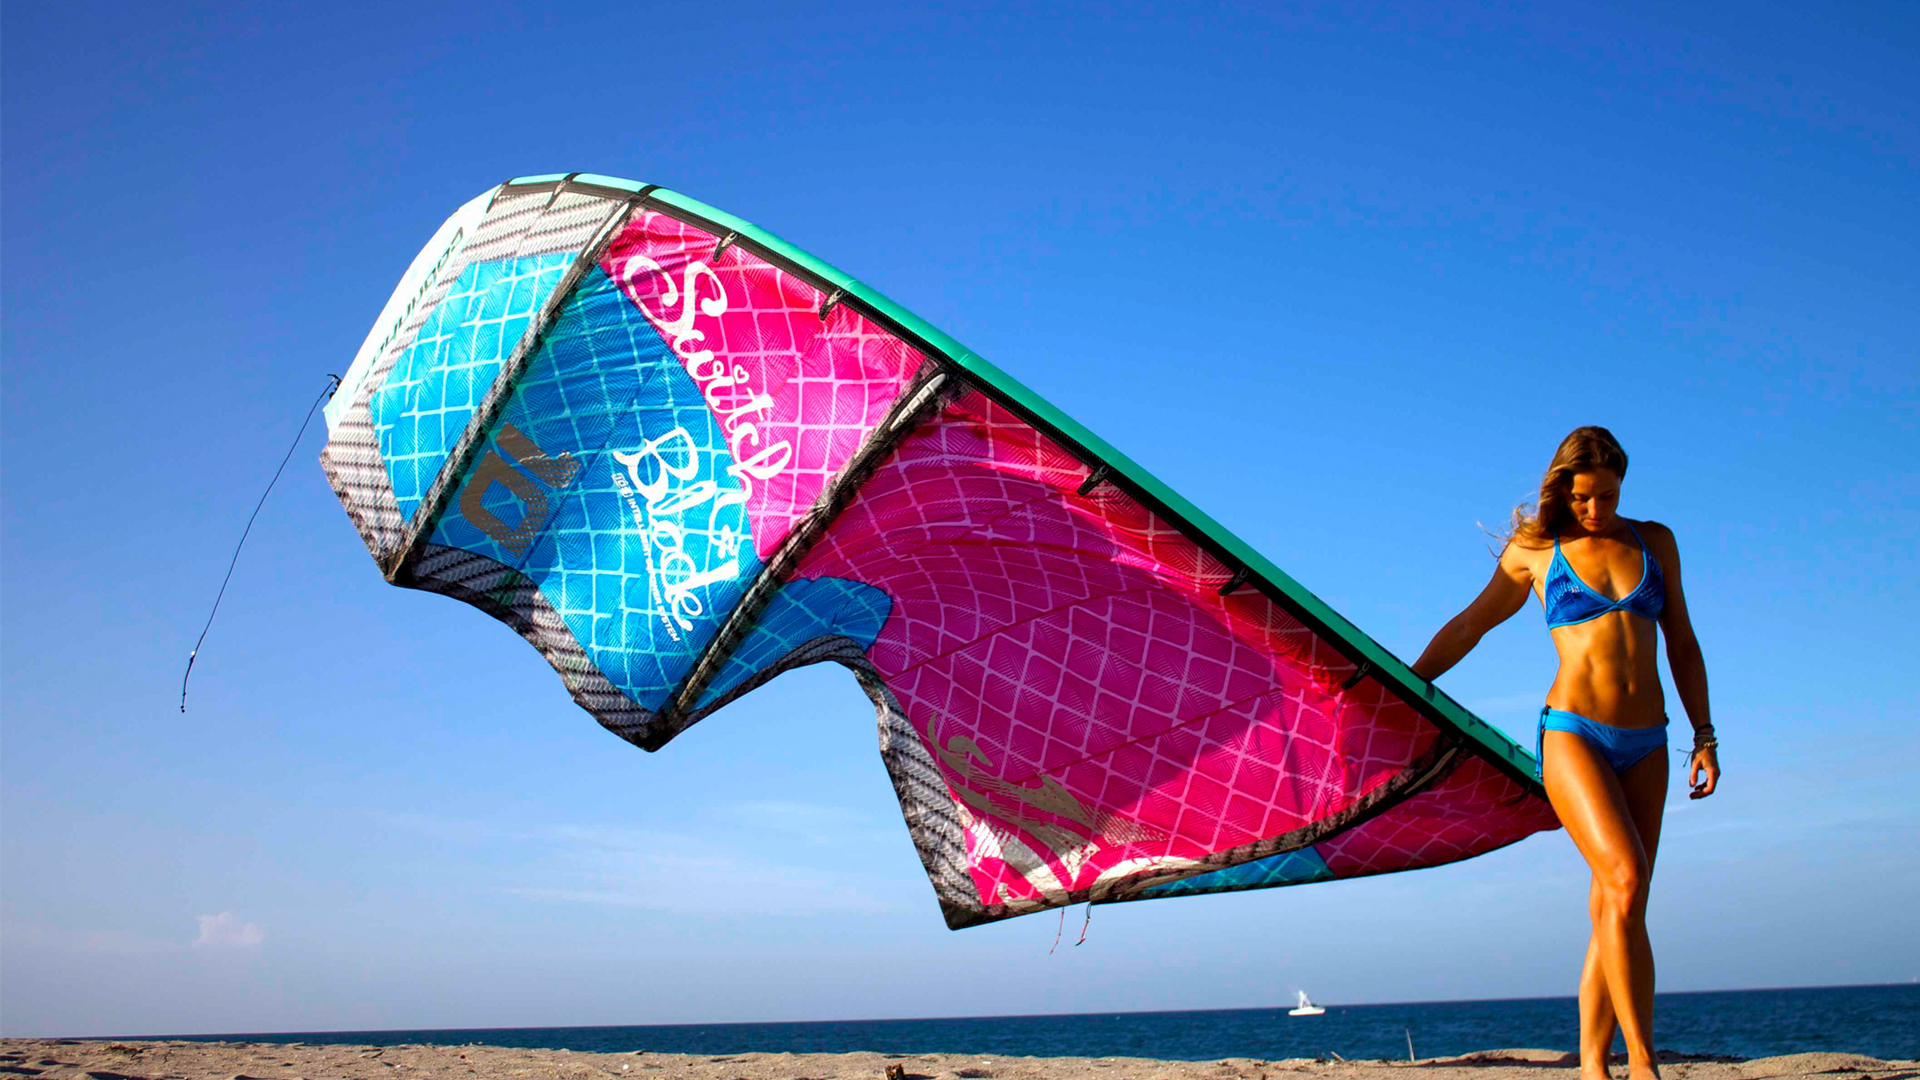 Download Kite Chick Wallpaper Melissa Gil With The Cabrinha